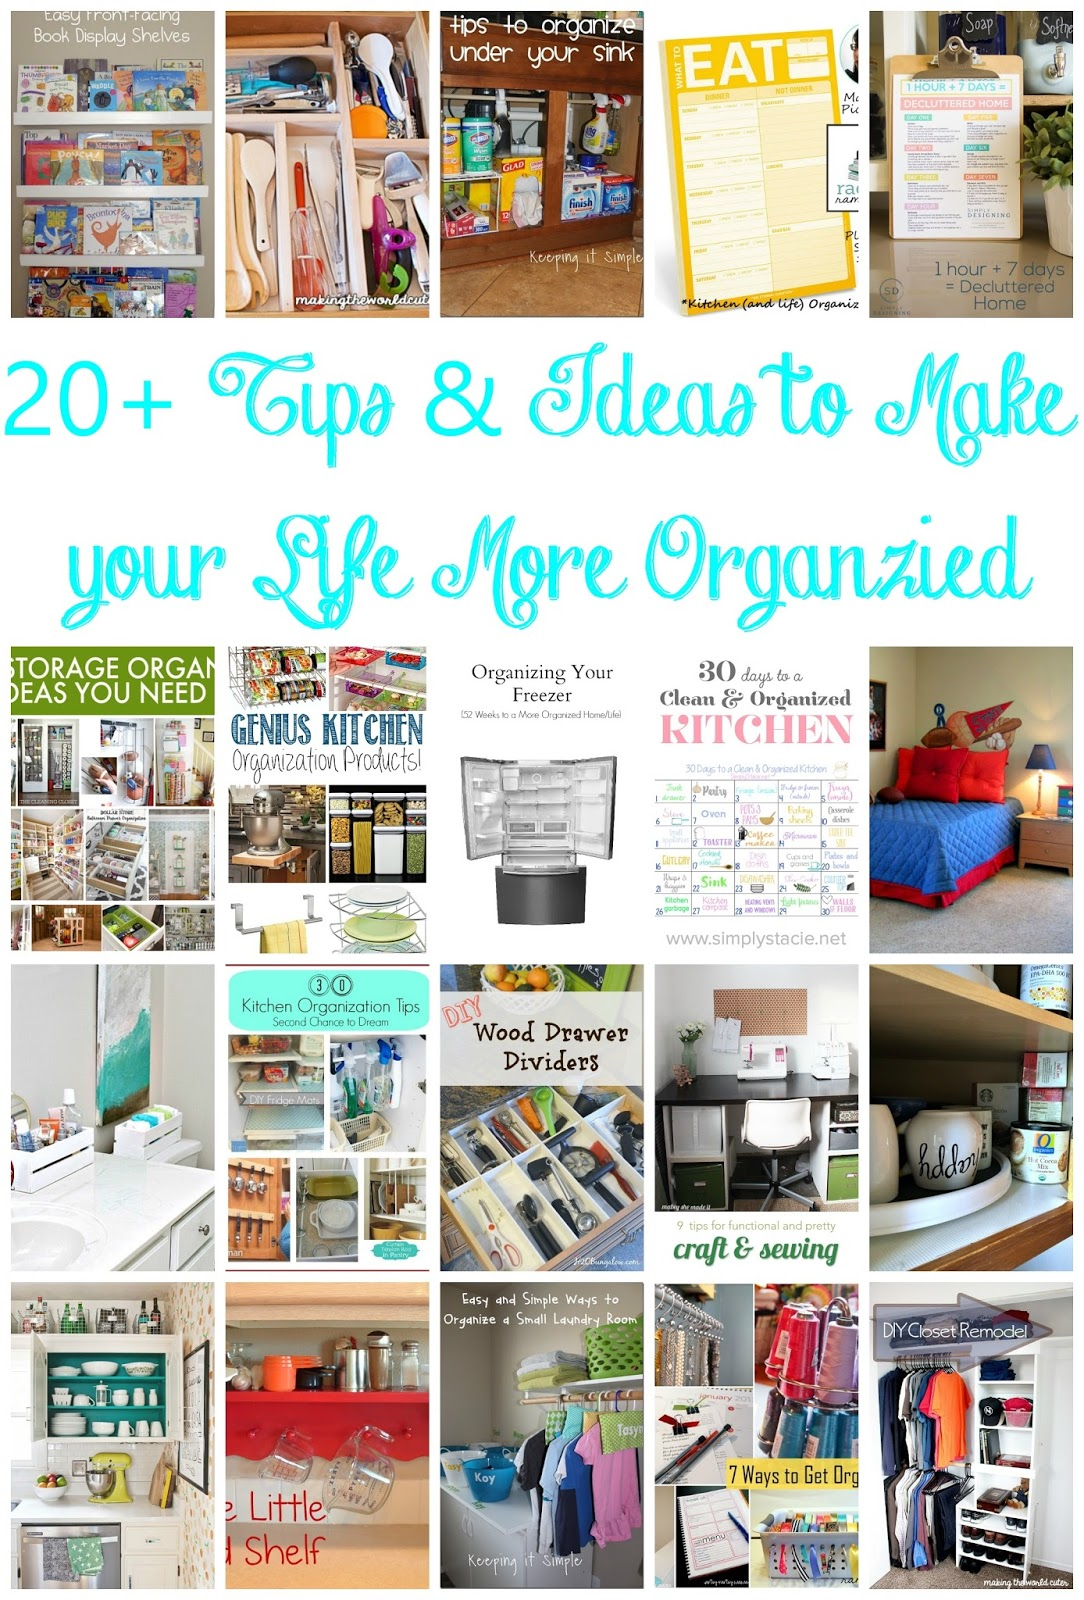 Keeping it simple 20 organization tips and ideas mmm 313 block party - Tips to keep your house more organized ...